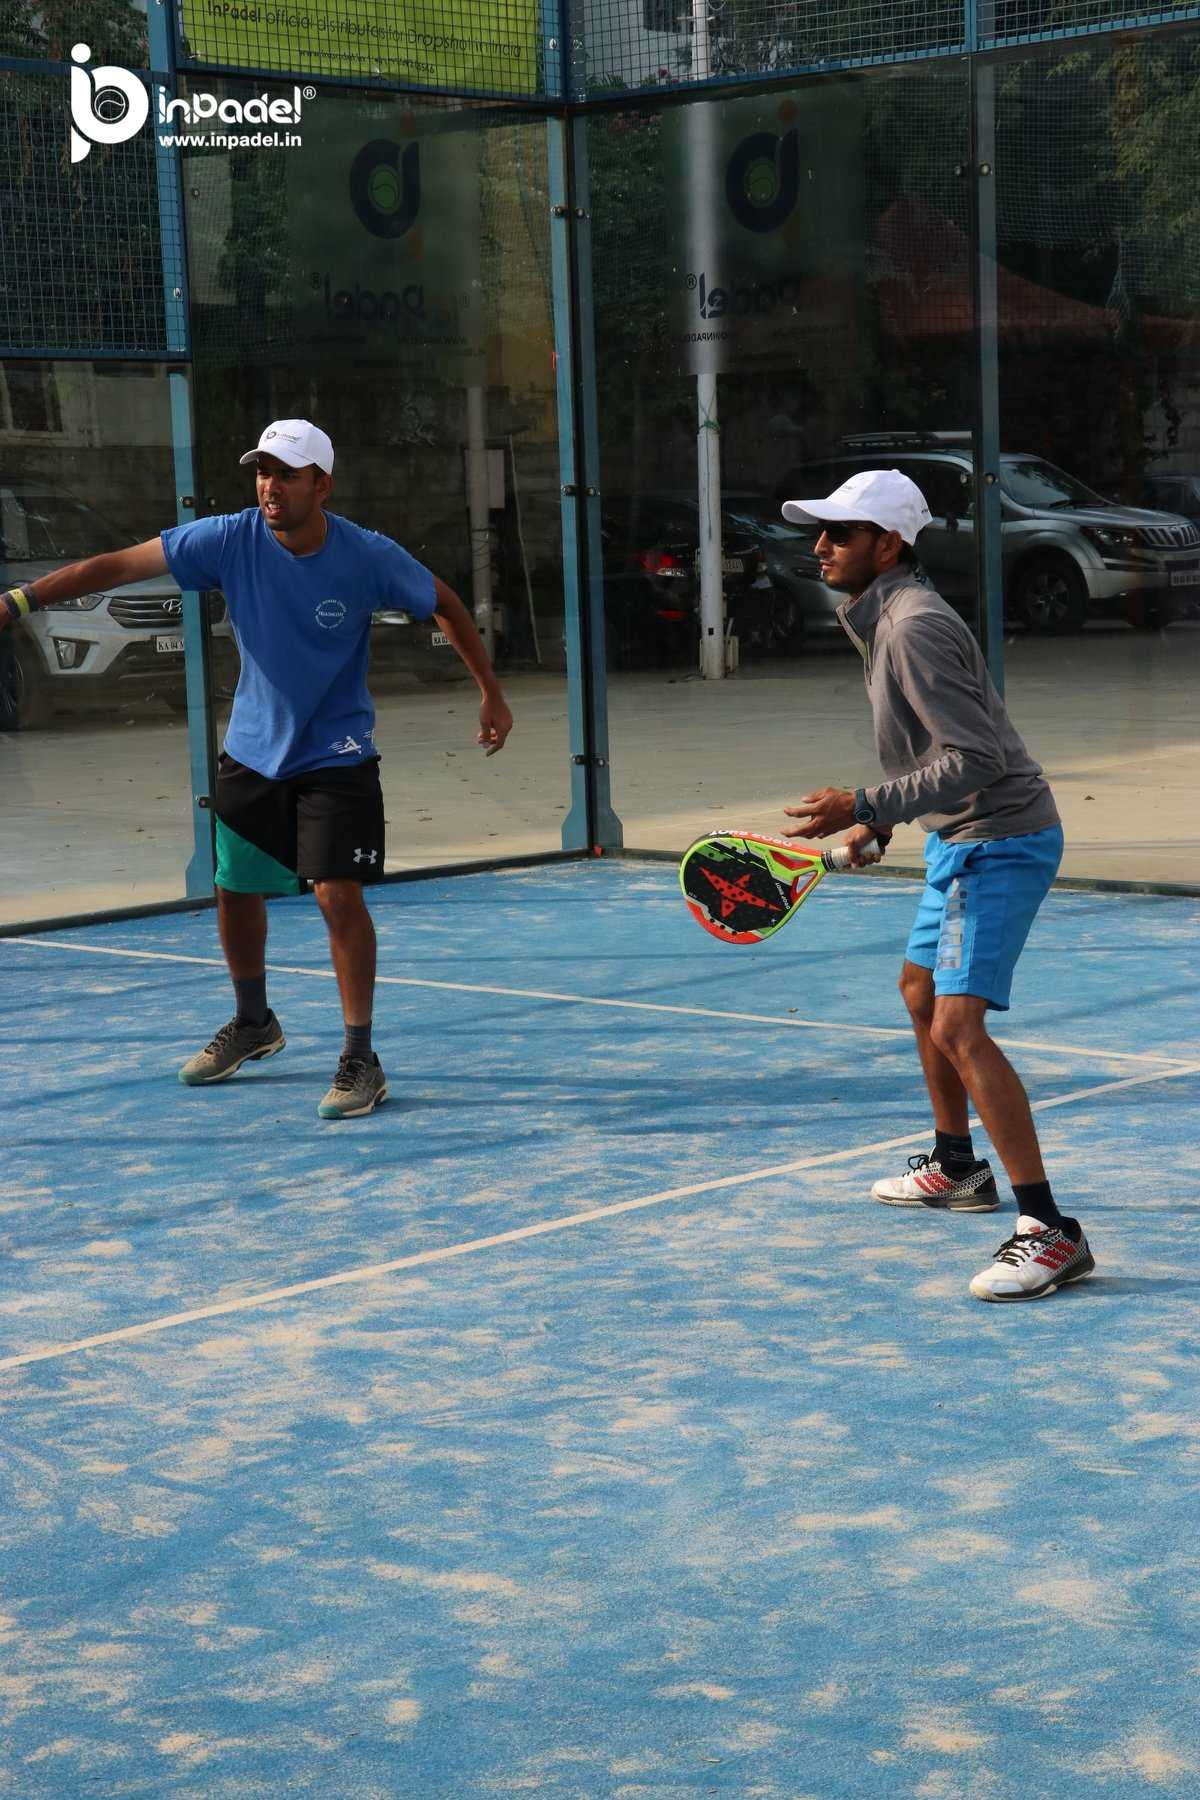 InPadel 1Yr Celebration of Padel in INDIA - Padel - Padel India (66)